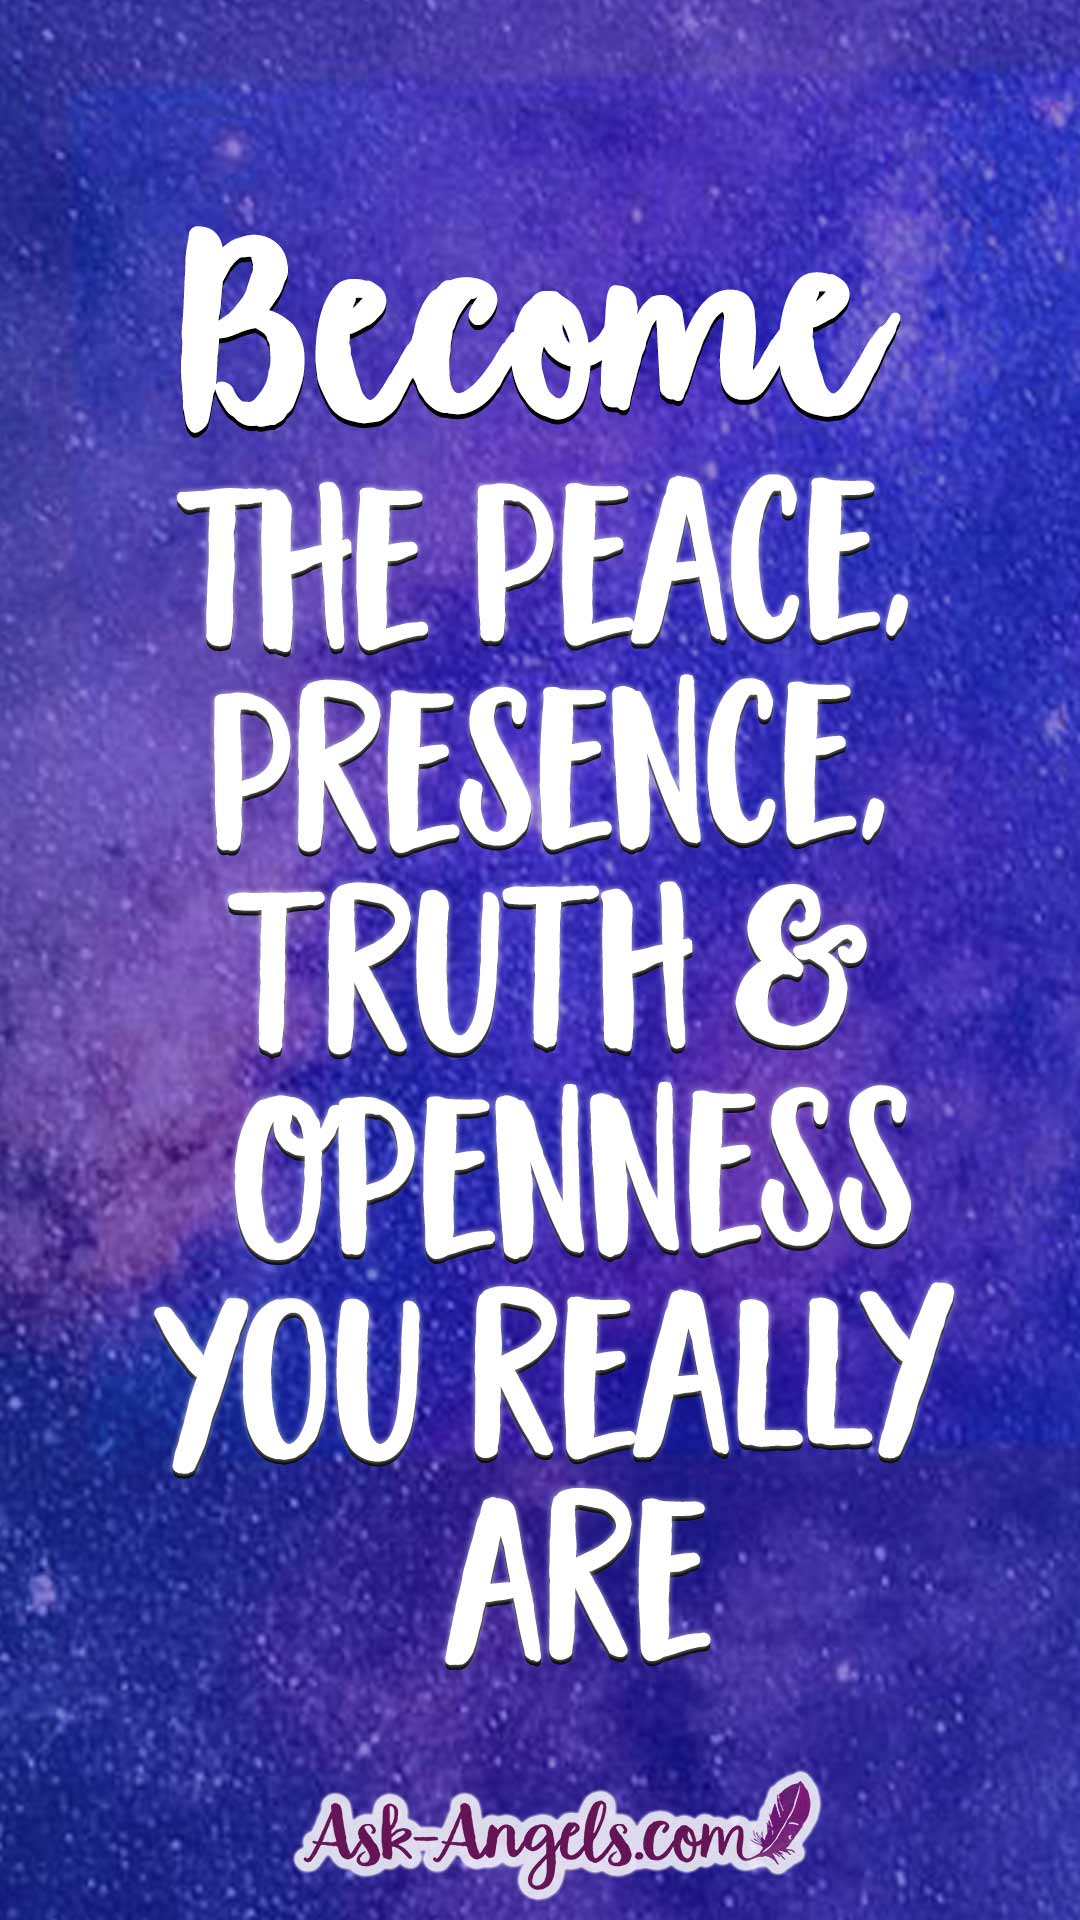 Become the peace, presence, truth and openness you really are. What you seek is seeking you.